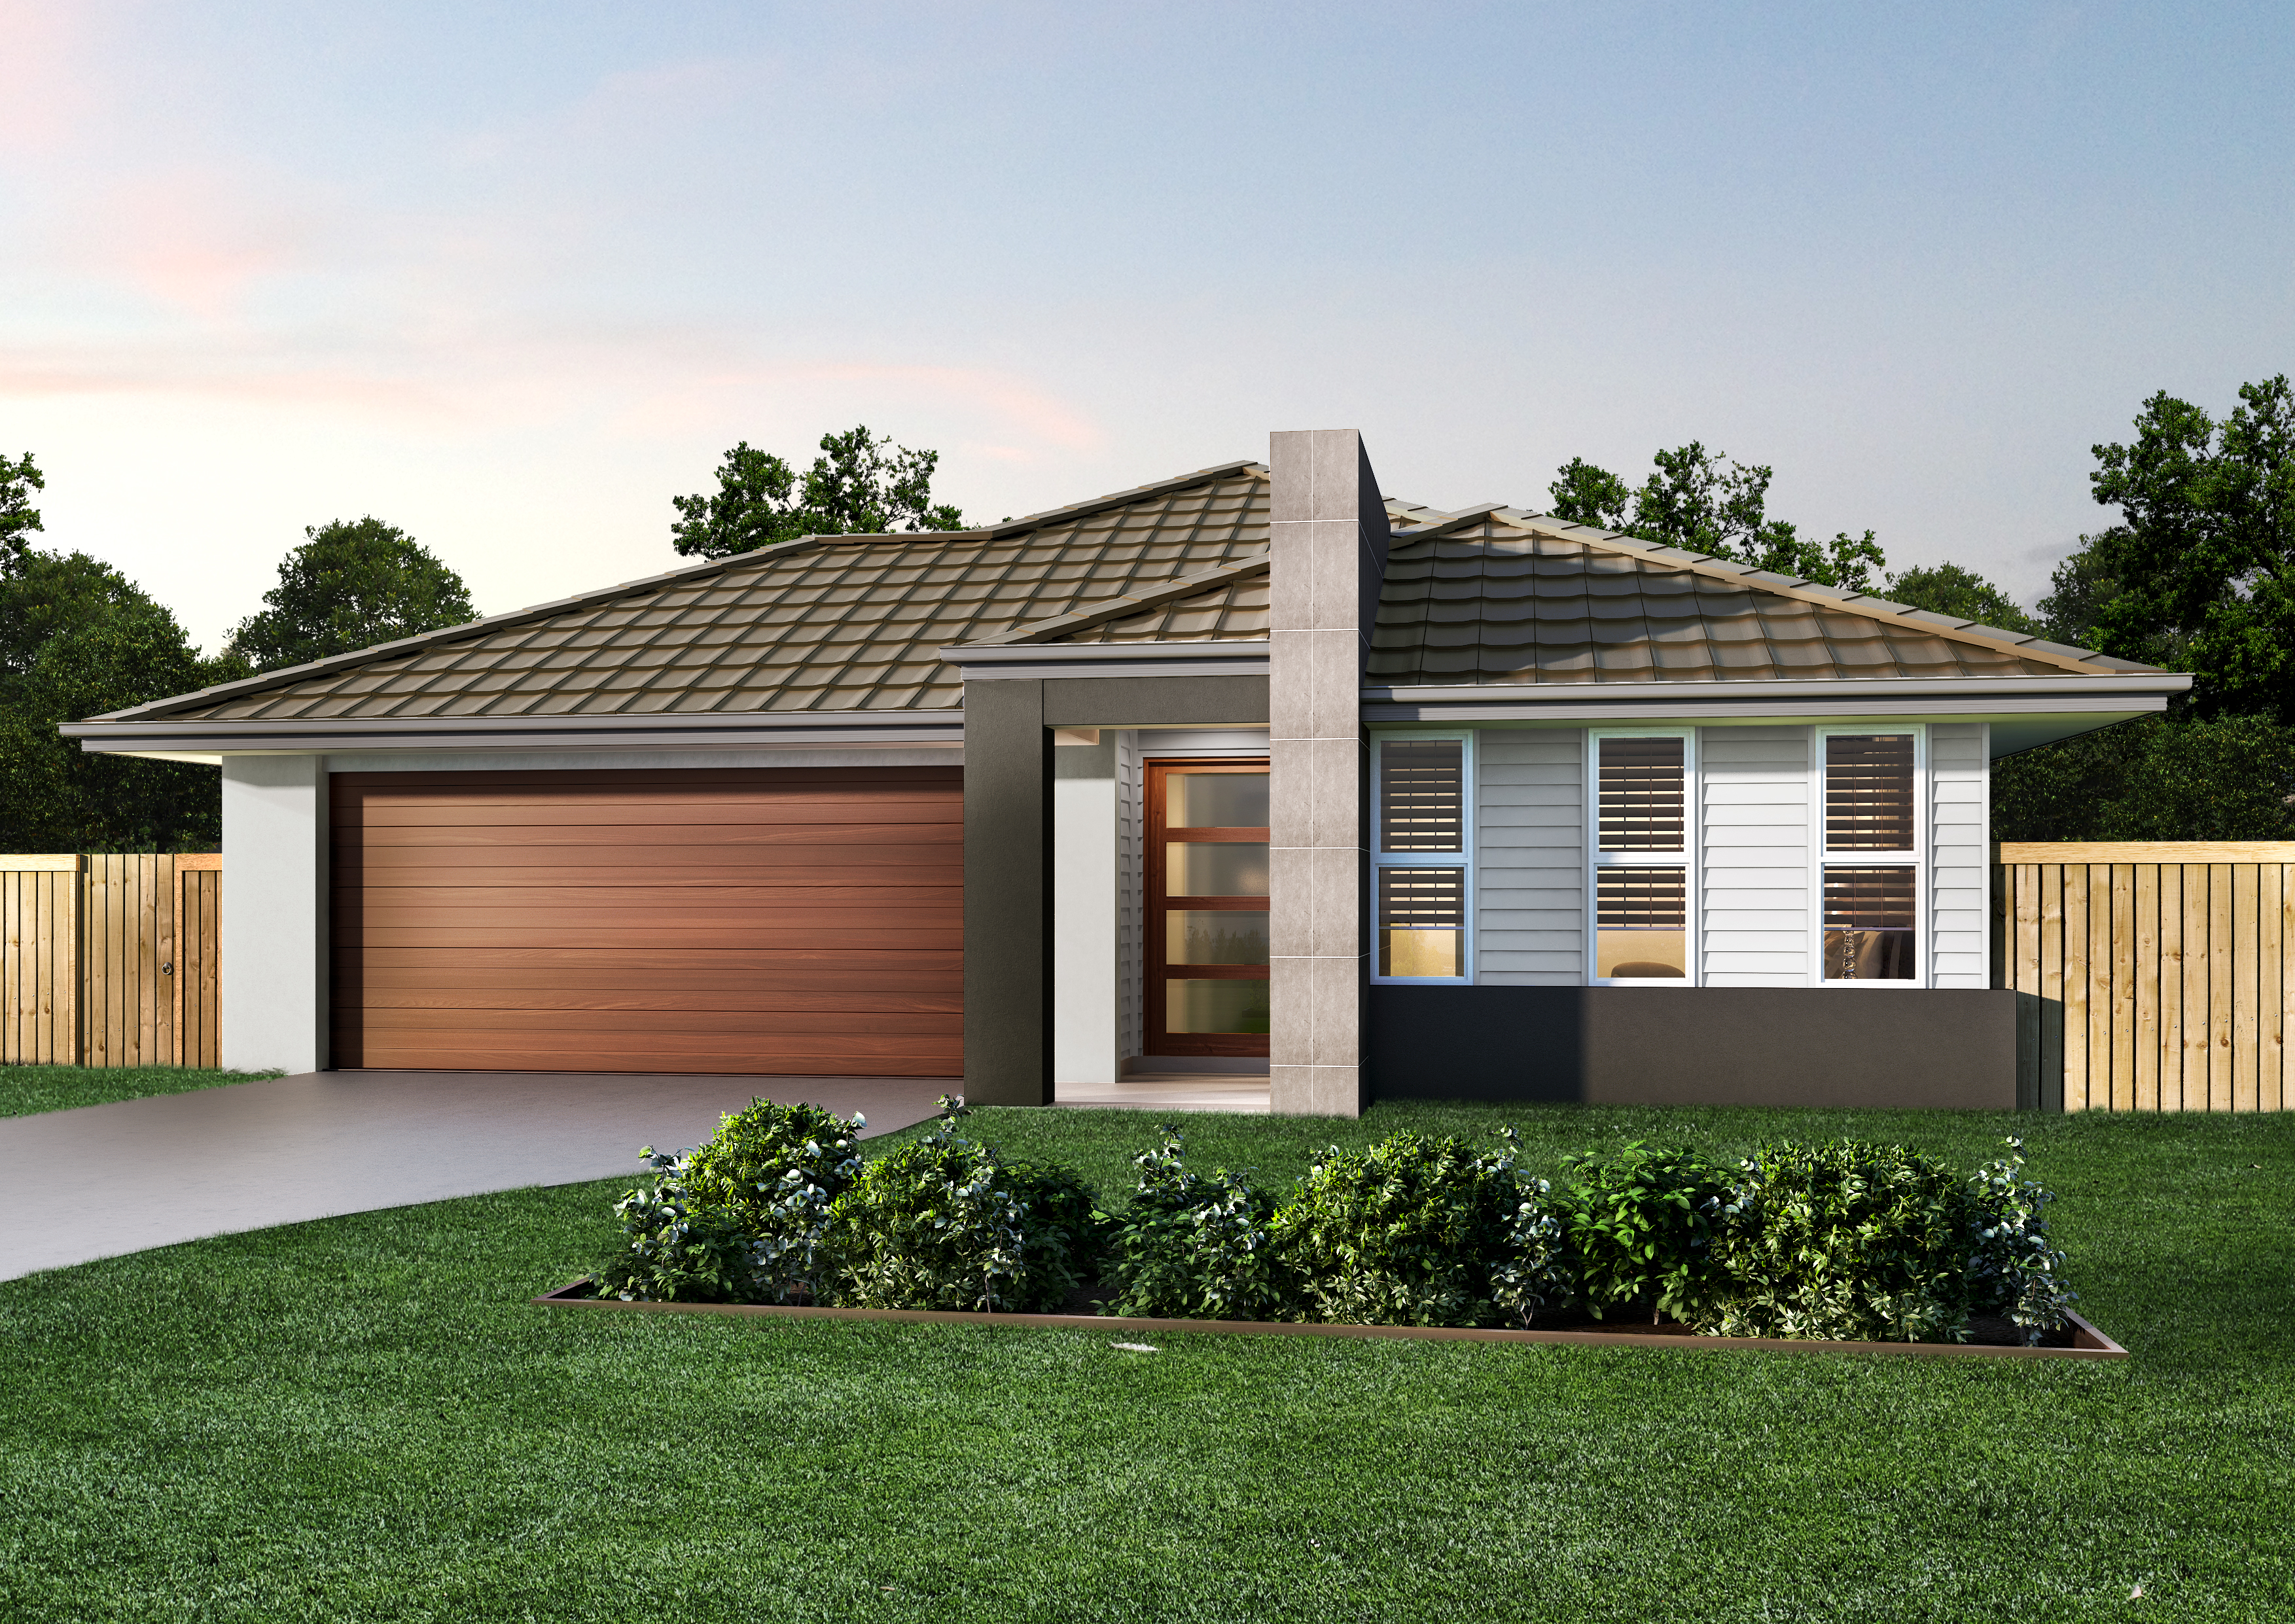 New home design fresh perry homes nsw qld for Perry home designs